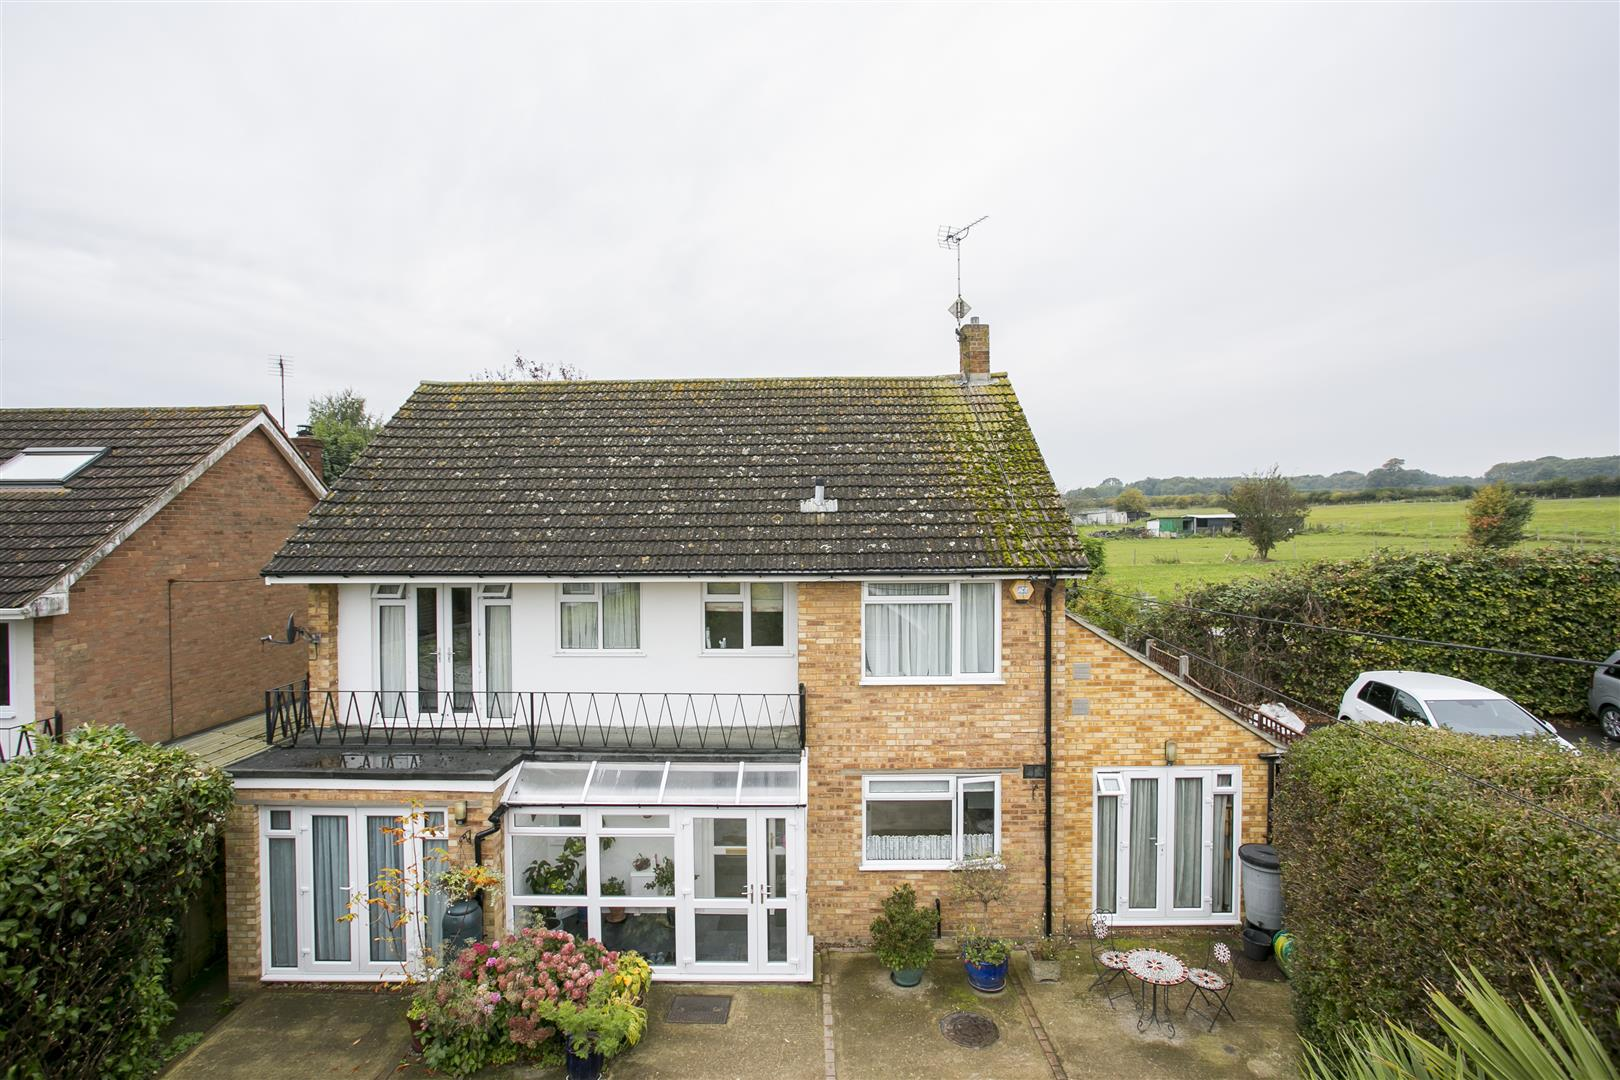 4 Bedrooms Detached House for sale in Butchers Lane, Mereworth, Maidstone